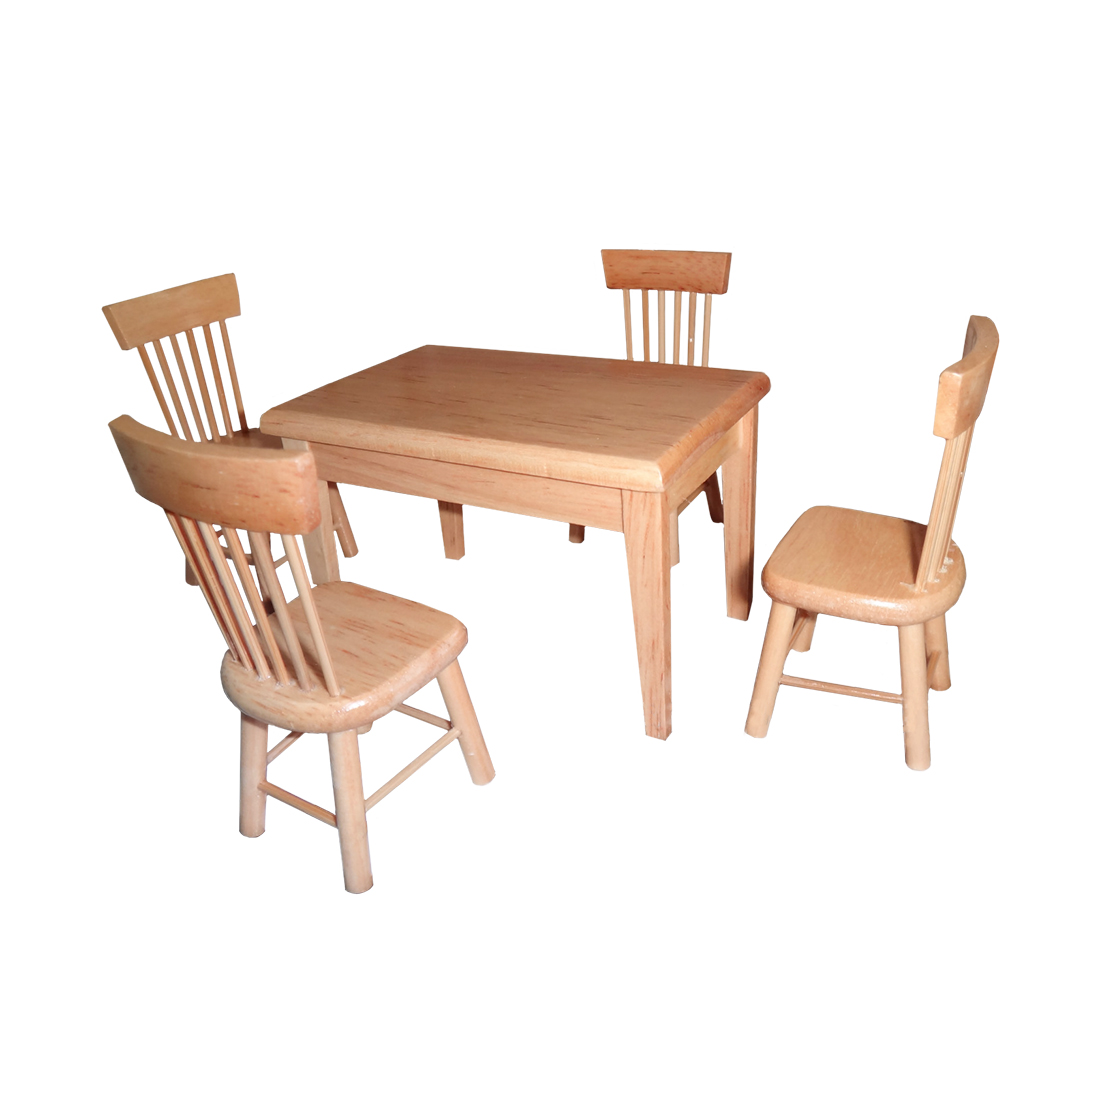 Surwish 1:12 Birch Children DIY Play & Pretend Toys Dining Table and Chair Set for Kid Playing Kitchen Kits